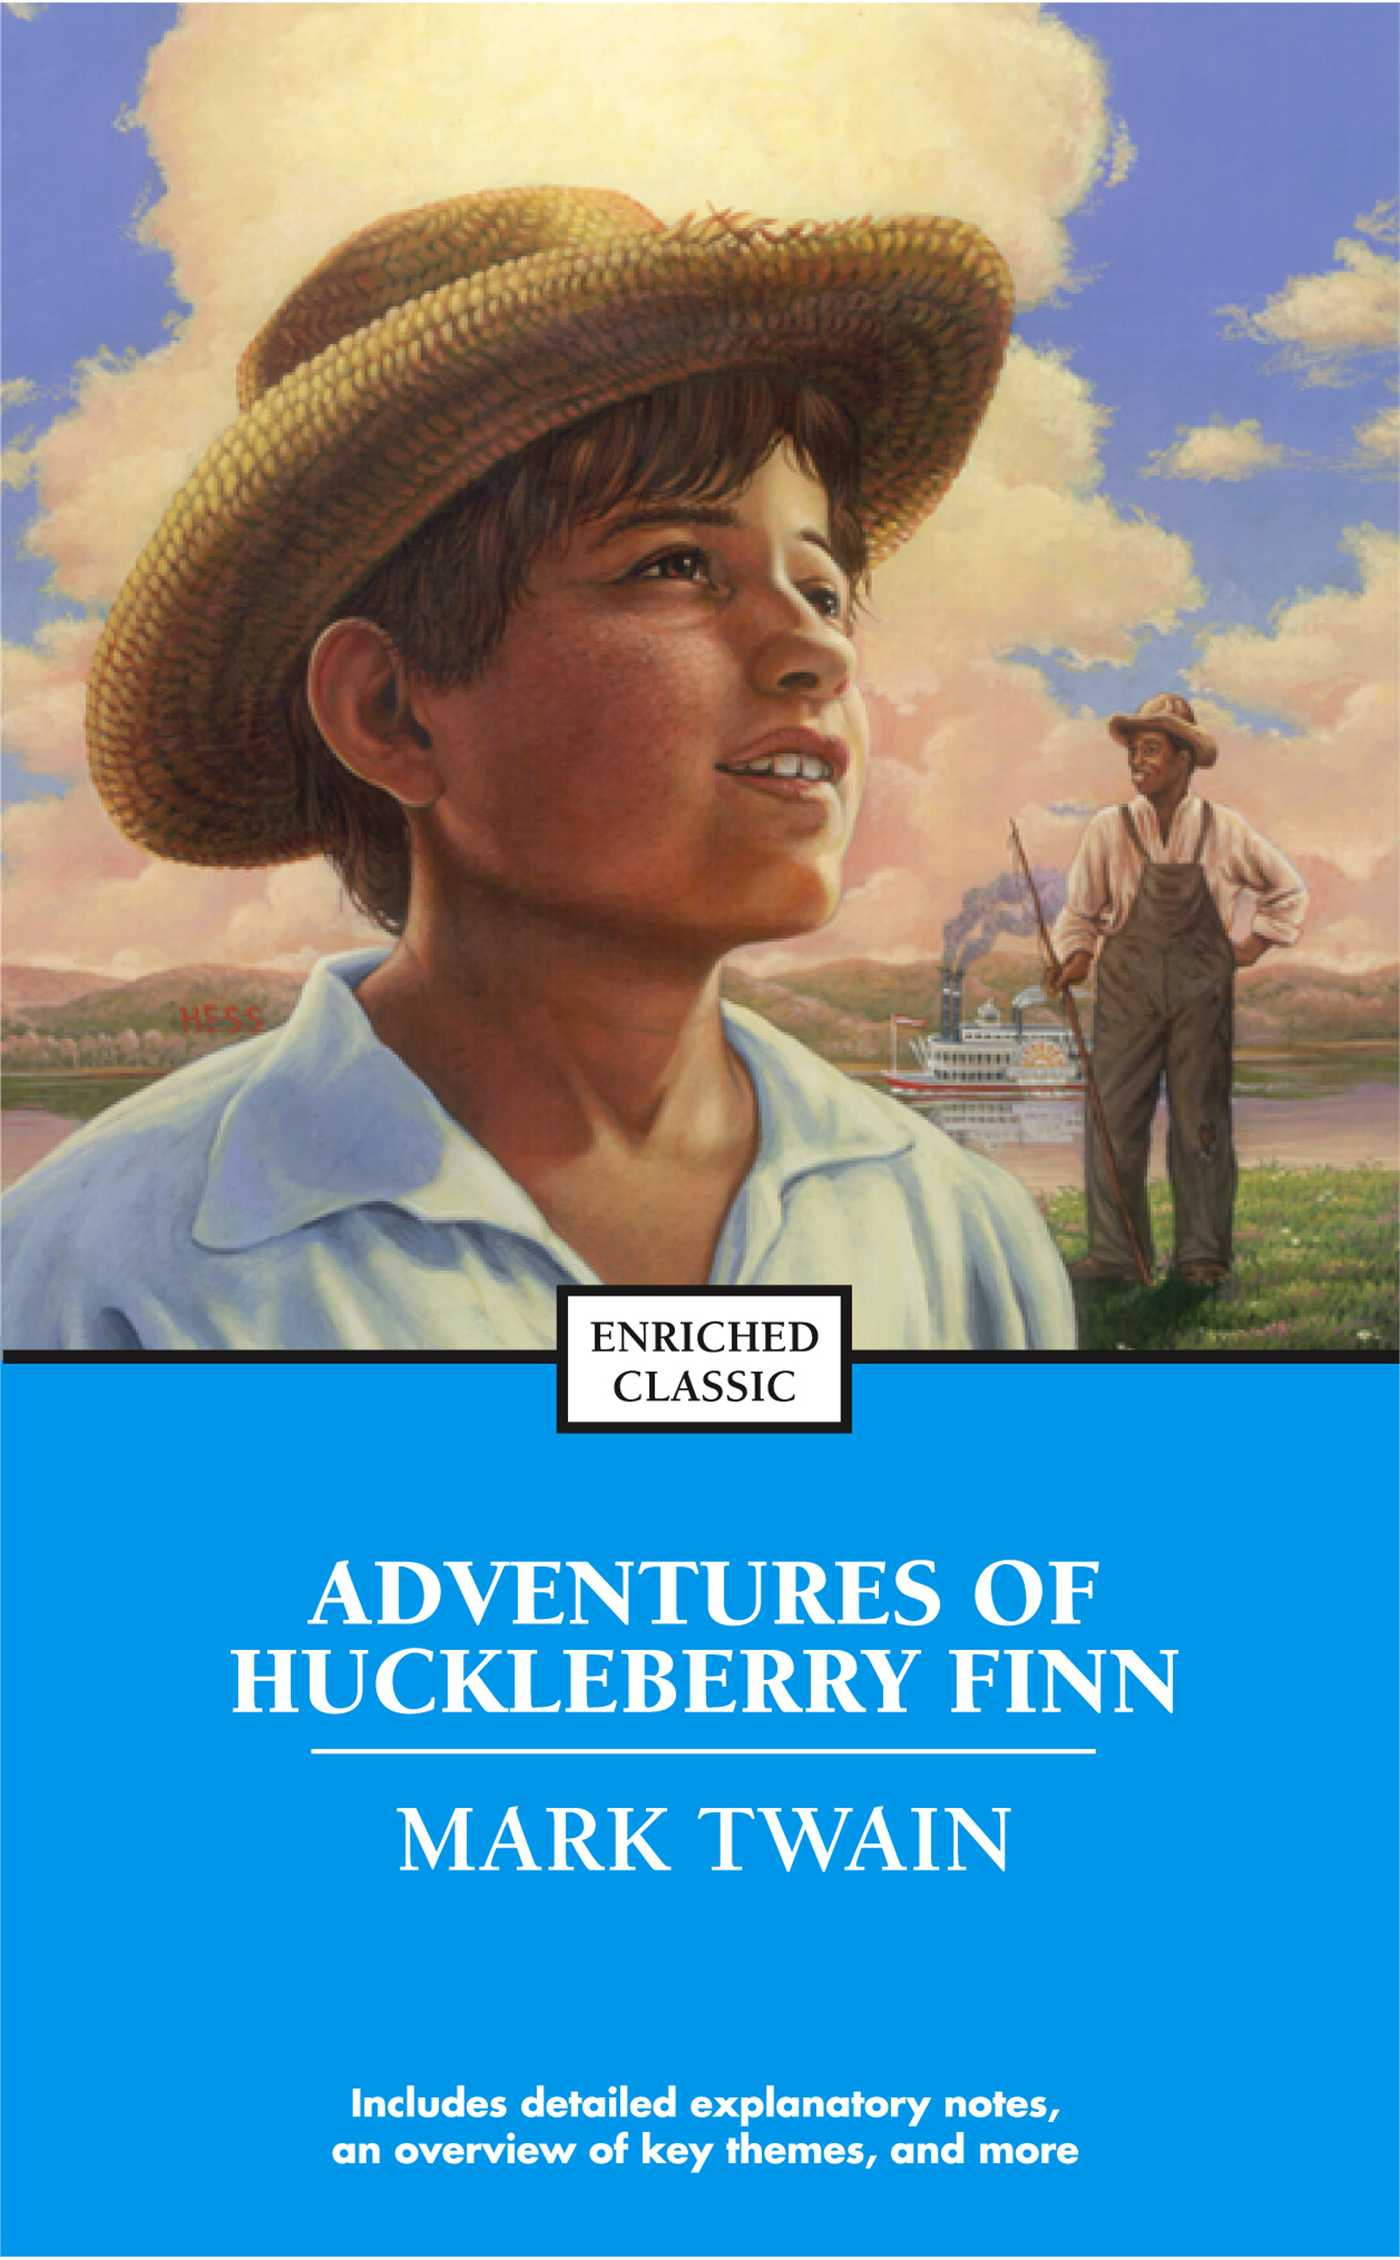 the development of the character of huck in the adventures of huckleberry finn by mark twain Read chapter 16 of the adventures of huckleberry finn by mark twain the text begins: chapter sixteen we slept most all day, and jim won't ever forgit you, huck you's de bes' fren' jim's ever had en you's de only fren' ole jim's got now i was paddling off, all in a sweat to tell on.